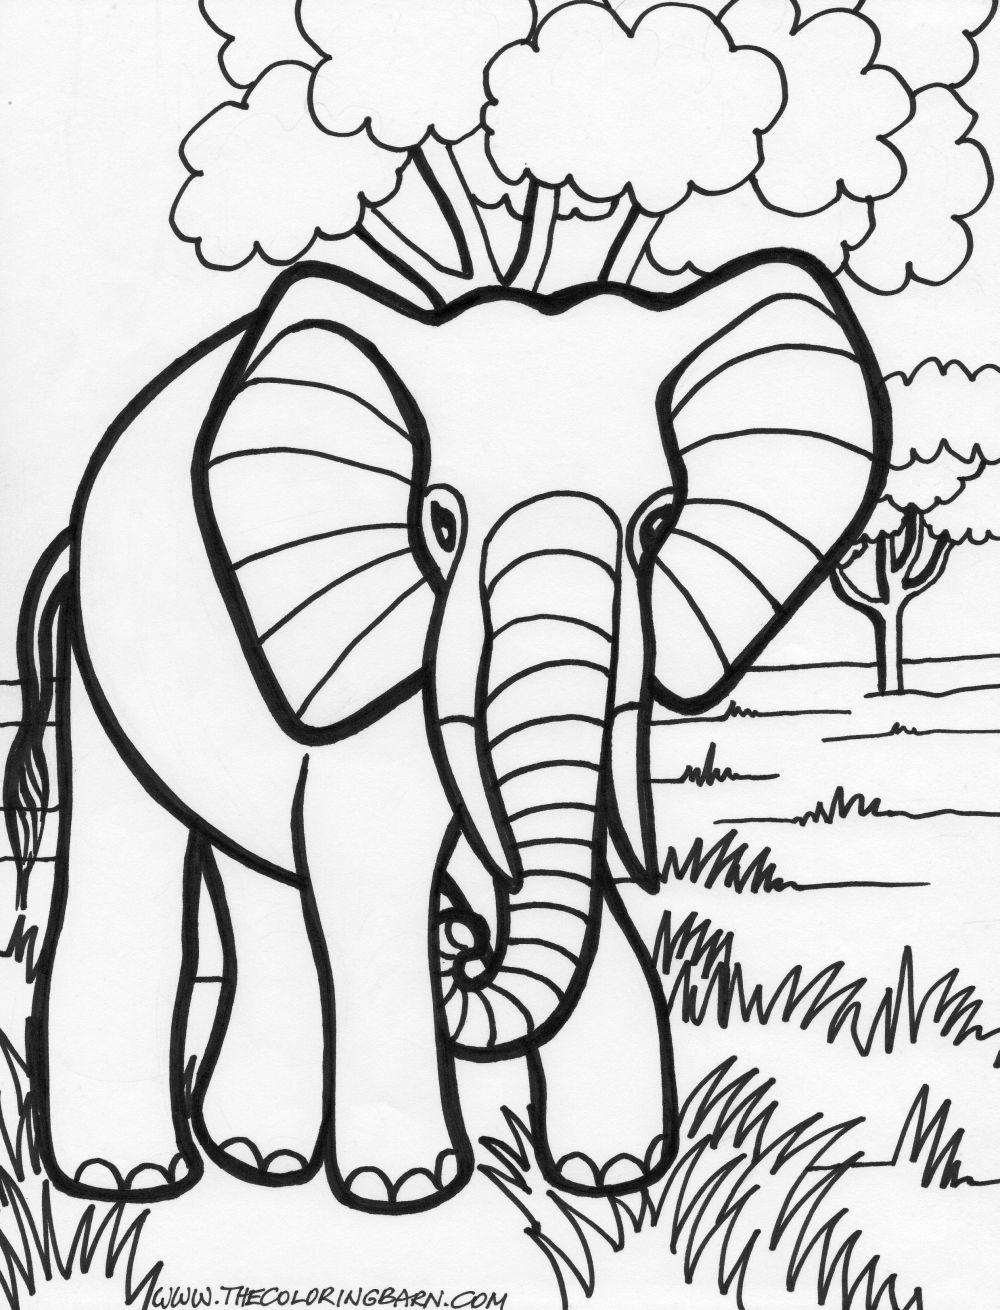 Free coloring pages elephant - Elephant Coloring Pages